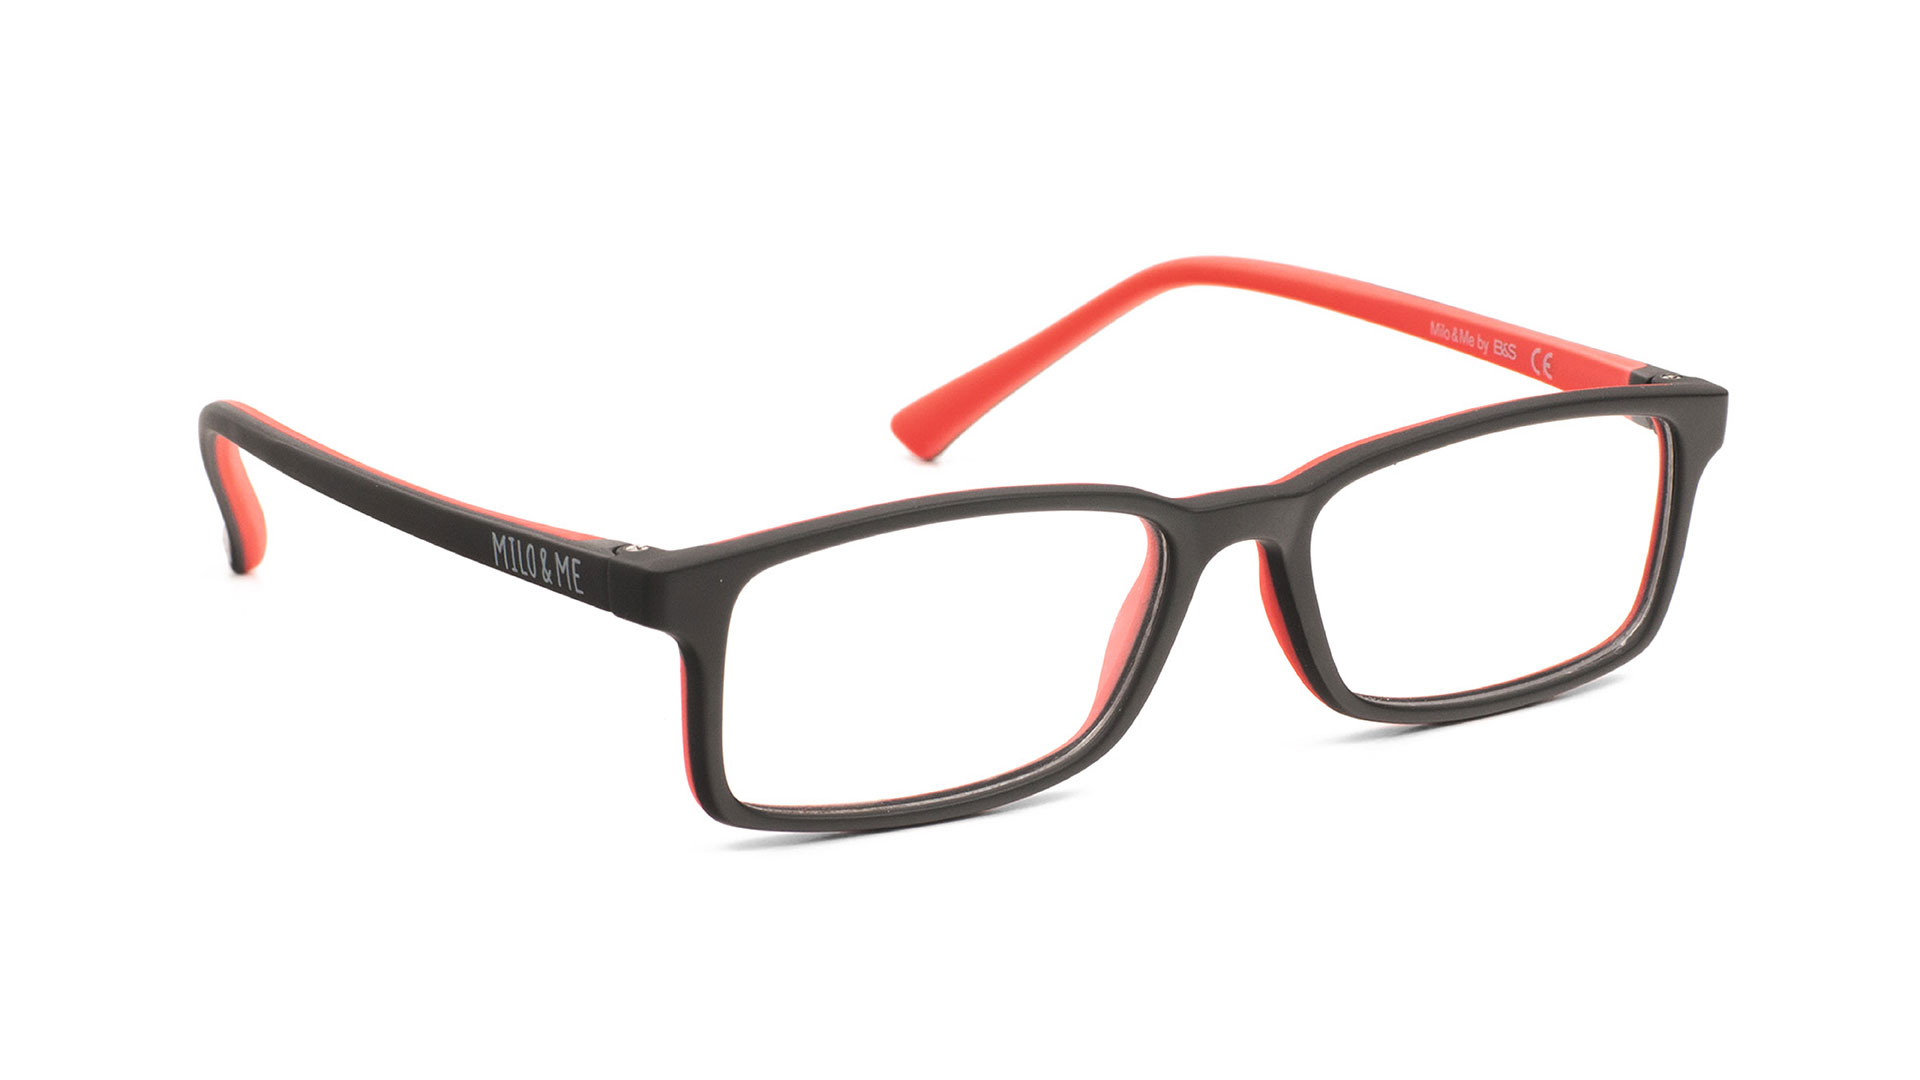 BlackRed H85021-13 - Milo & Me Eyewear - Optimum RX Lens Specialists